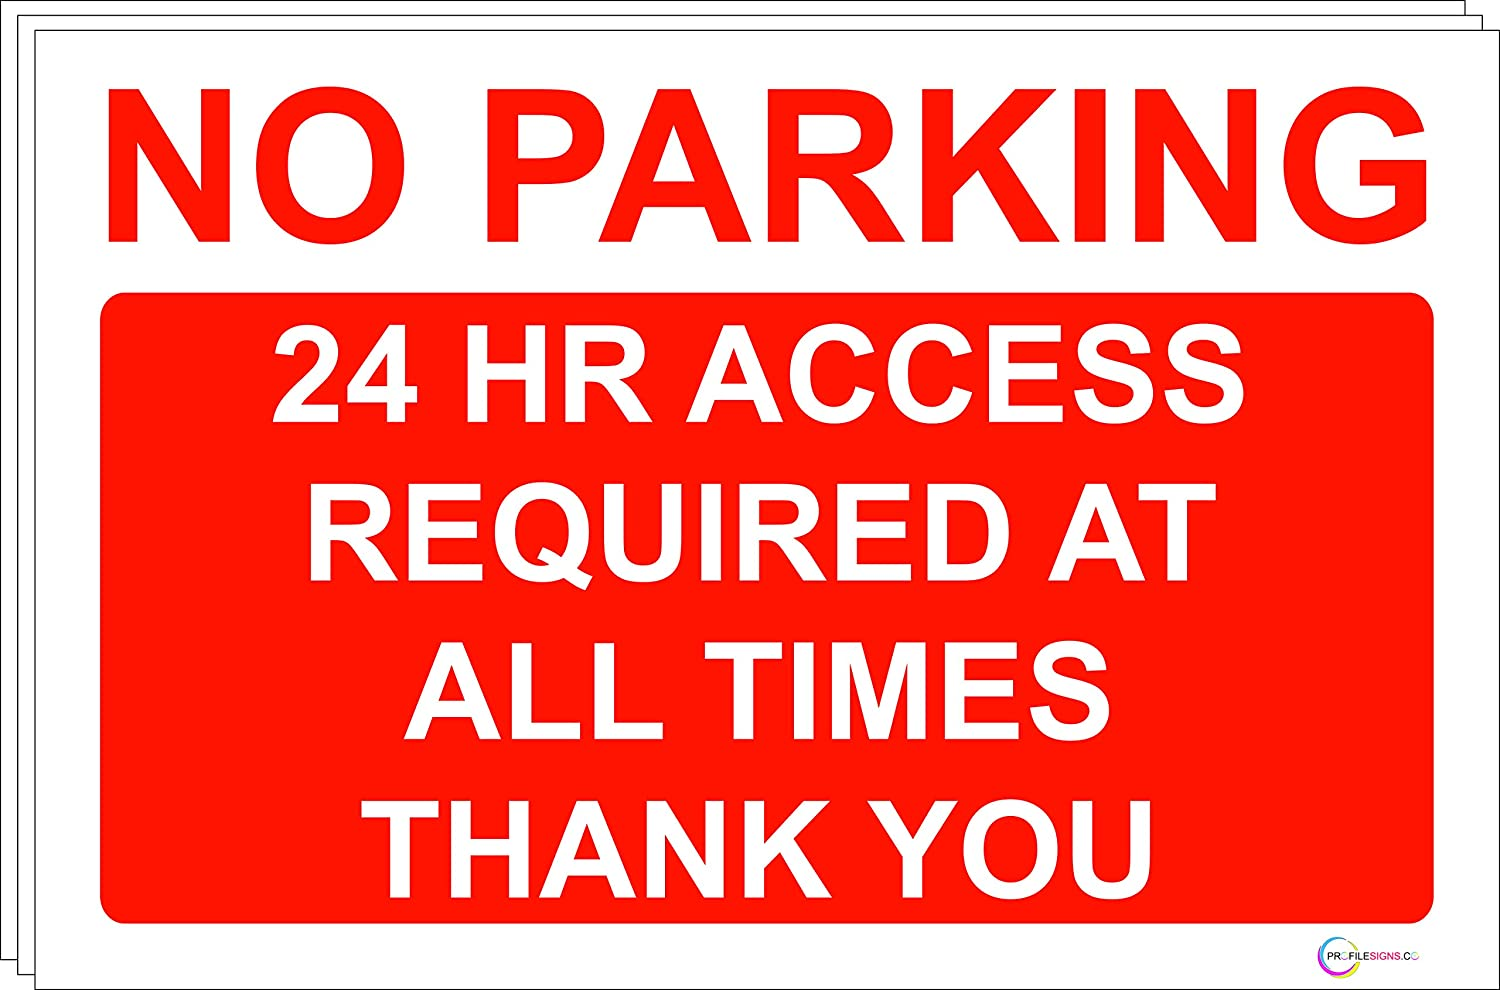 Garage Large Choice 24 Hour Access Rigid PVC Gates Ect NO PARKING Sign//Signs 3, Rigid PVC NO PARKING Garage in constant use Quality Screen Printed By Profilesigns.co